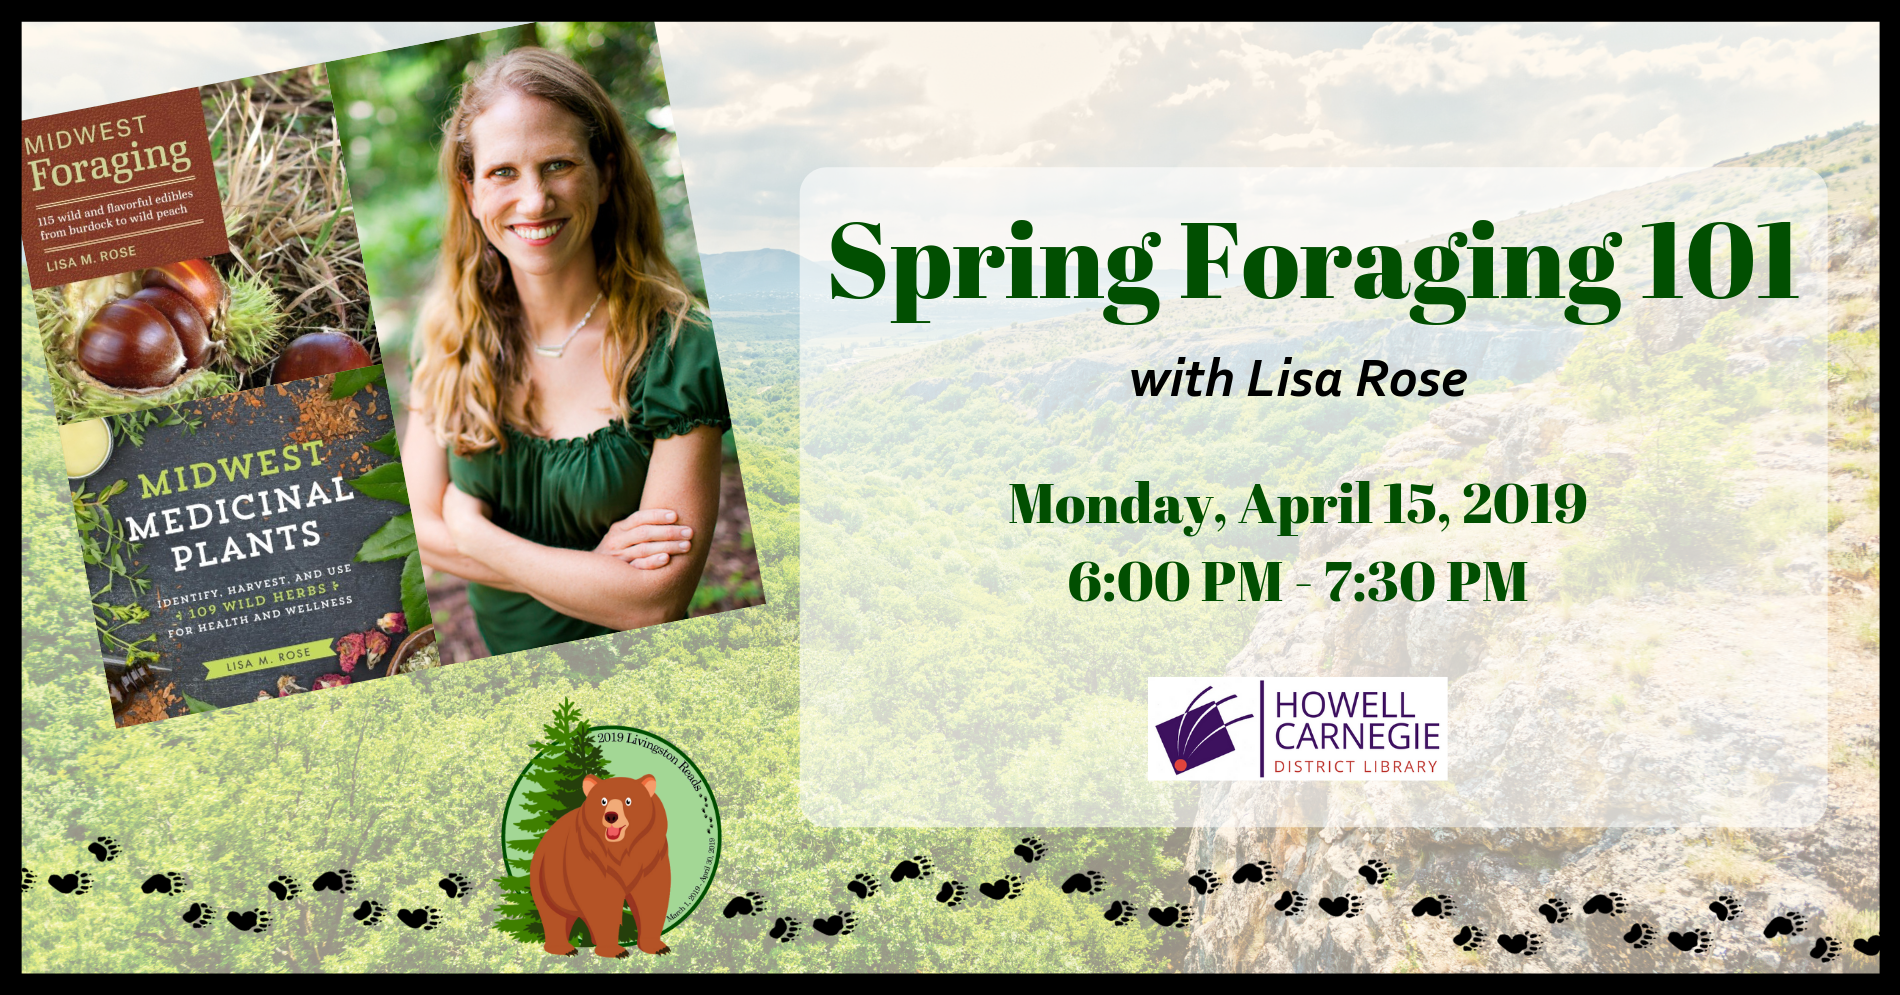 Spring Foraging 101 with Lisa Rose